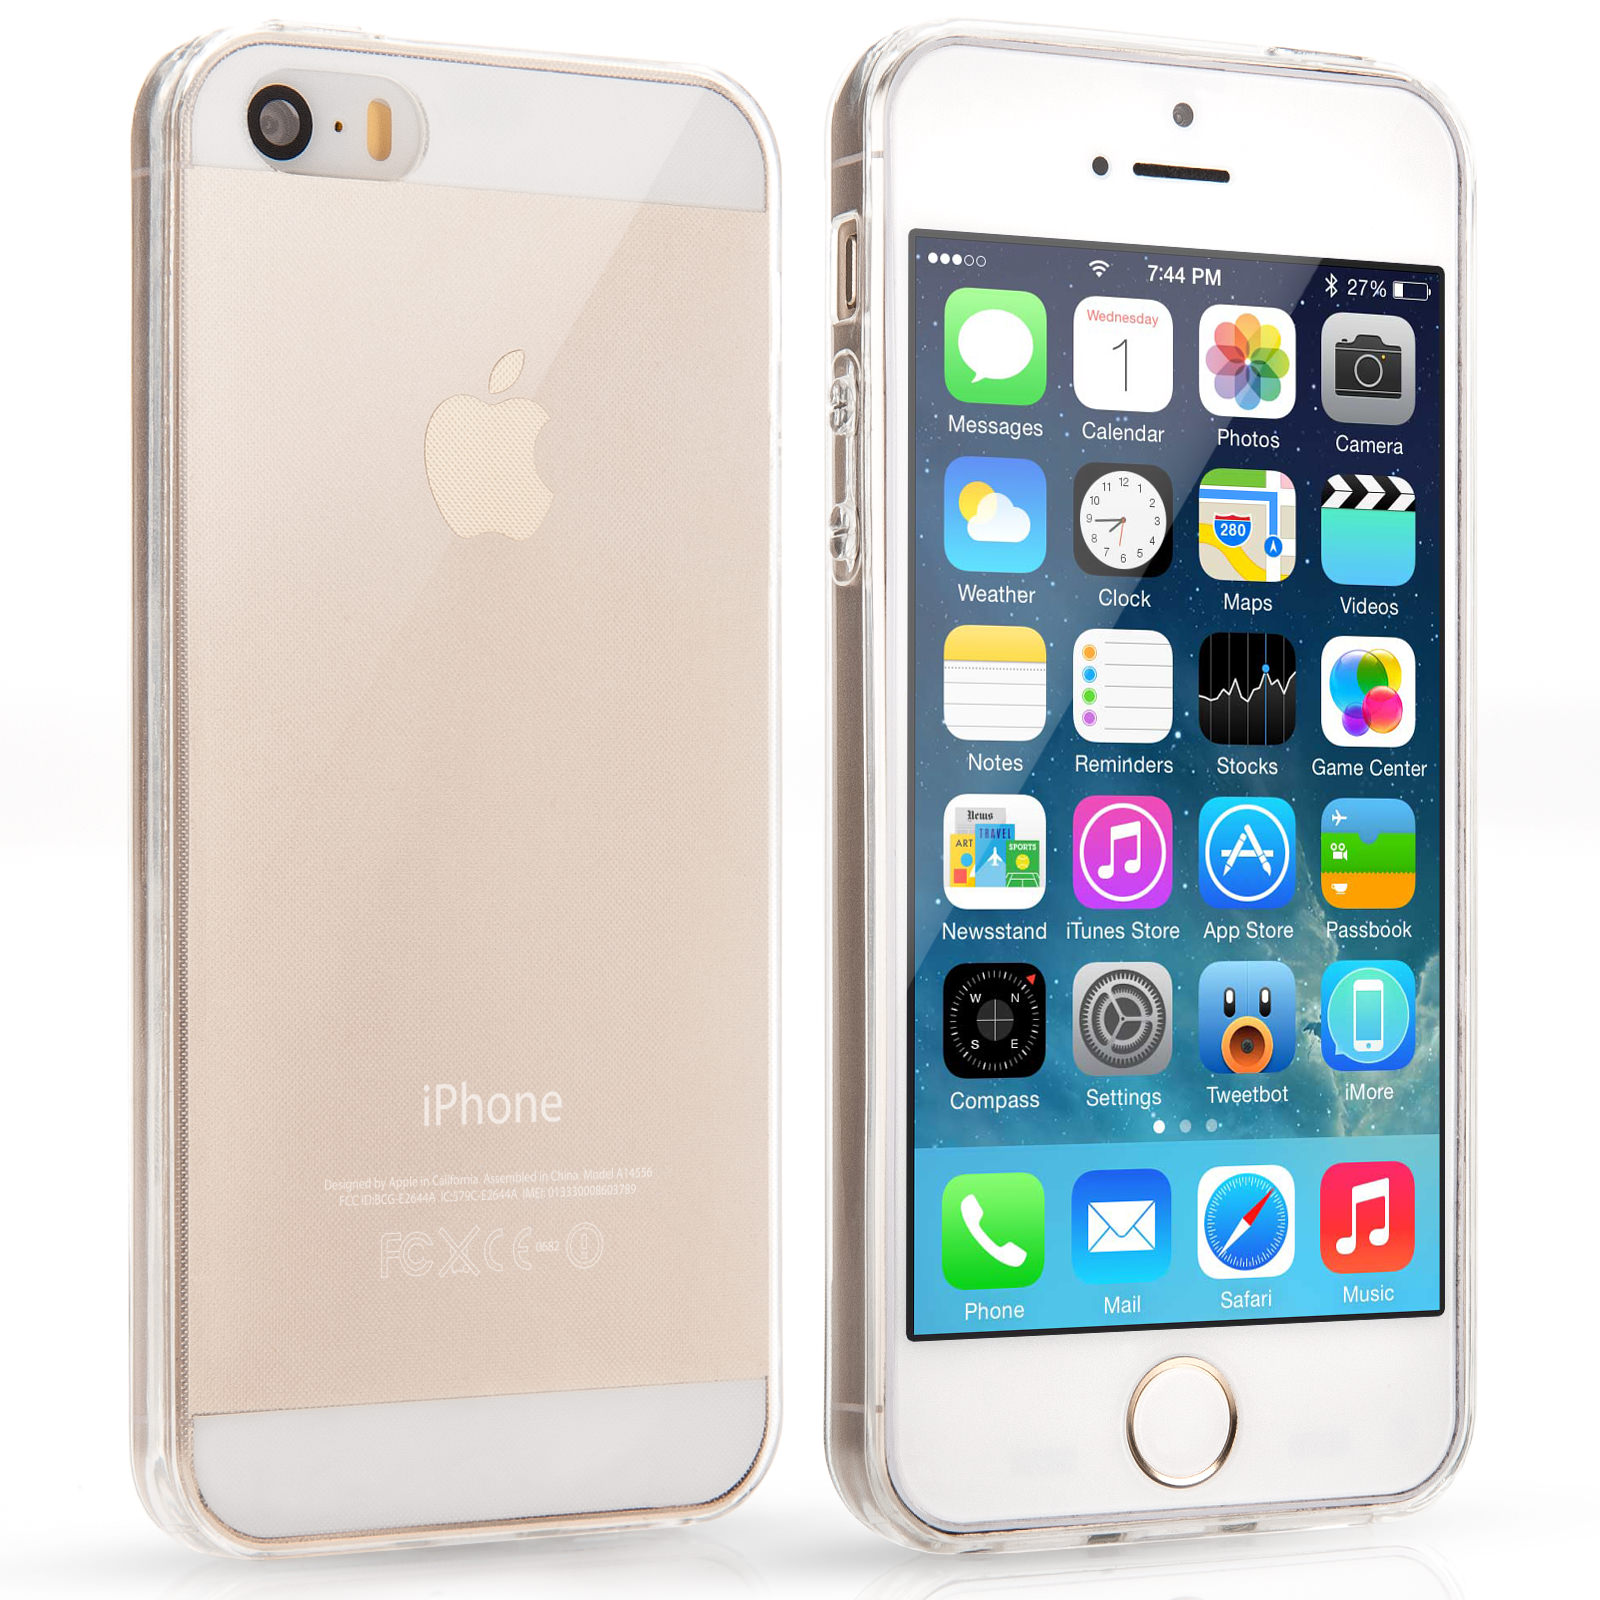 Yousave Accessories iPhone 5 / 5S Ultra Thin Clear Gel Case